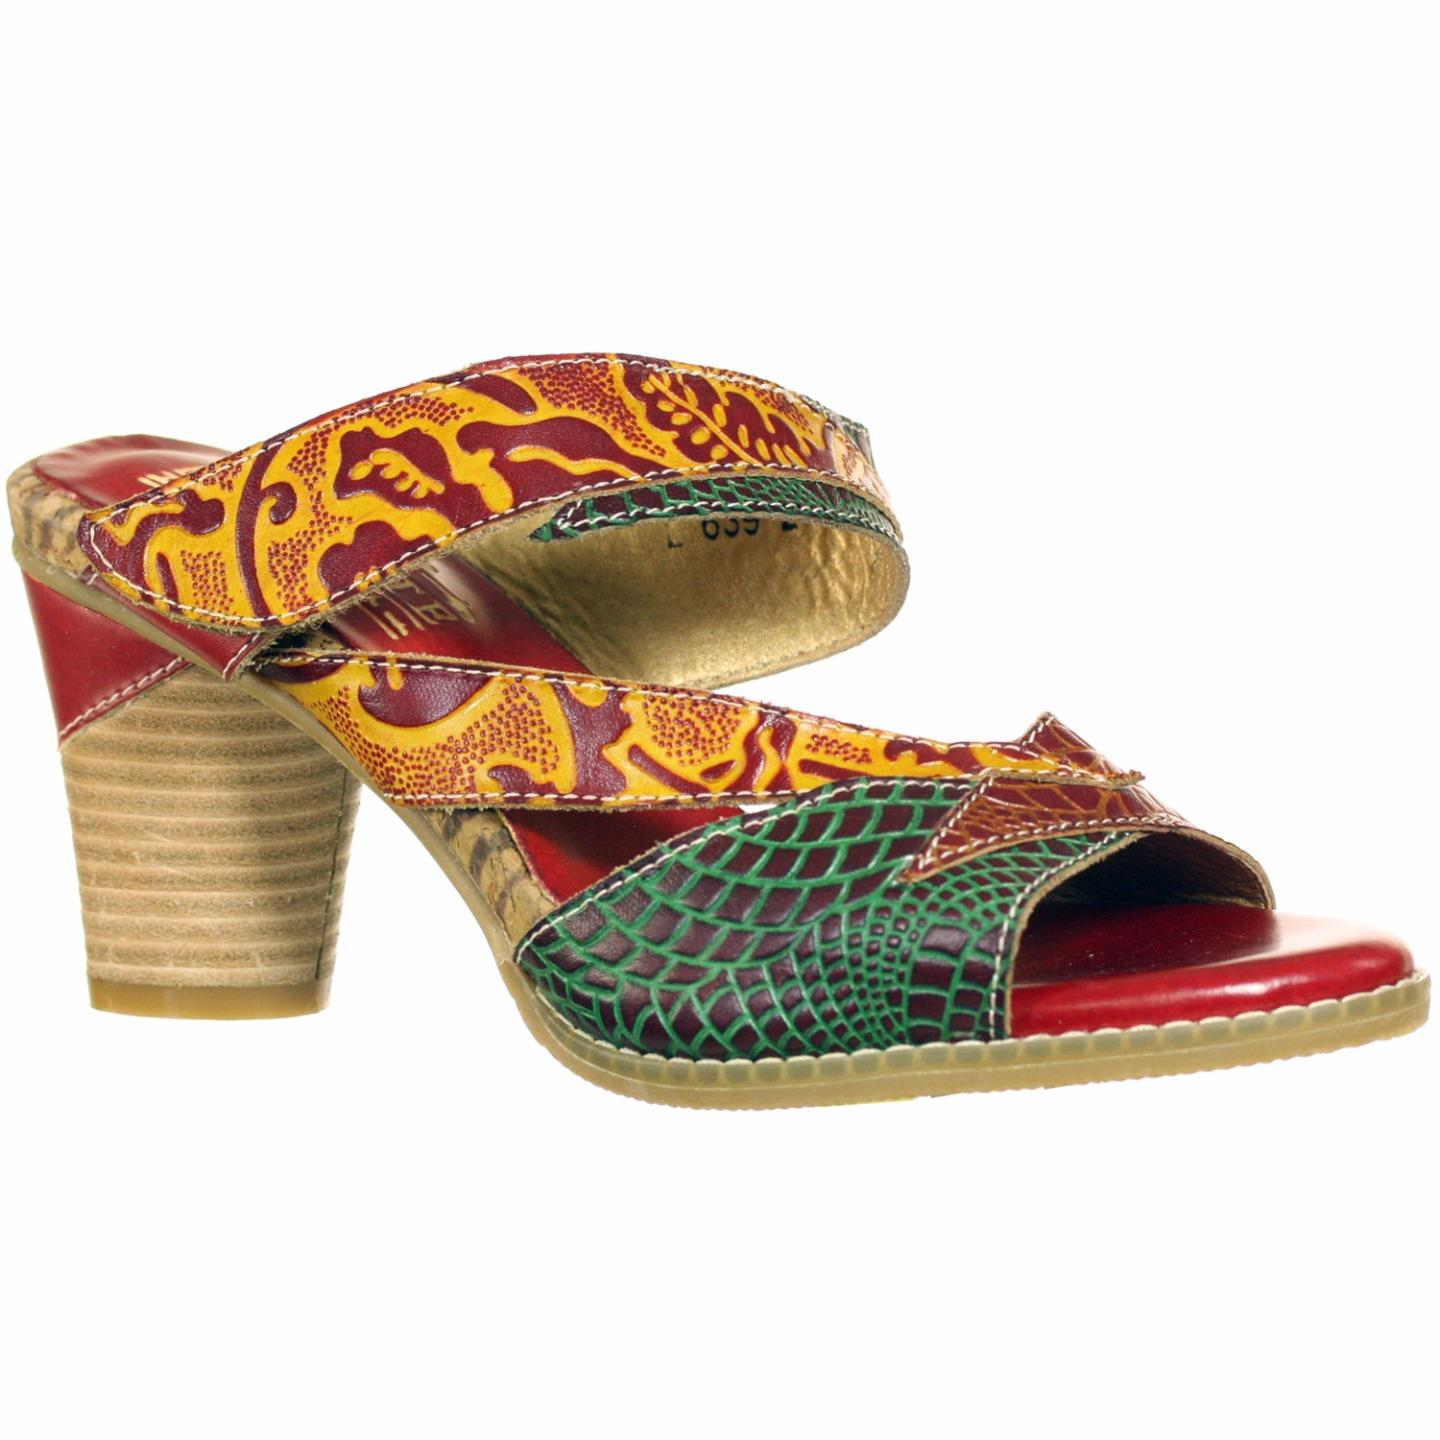 L'Artiste Collection By Spring Step Women's Adilisa Sandal Red Multi EU 37 US 7